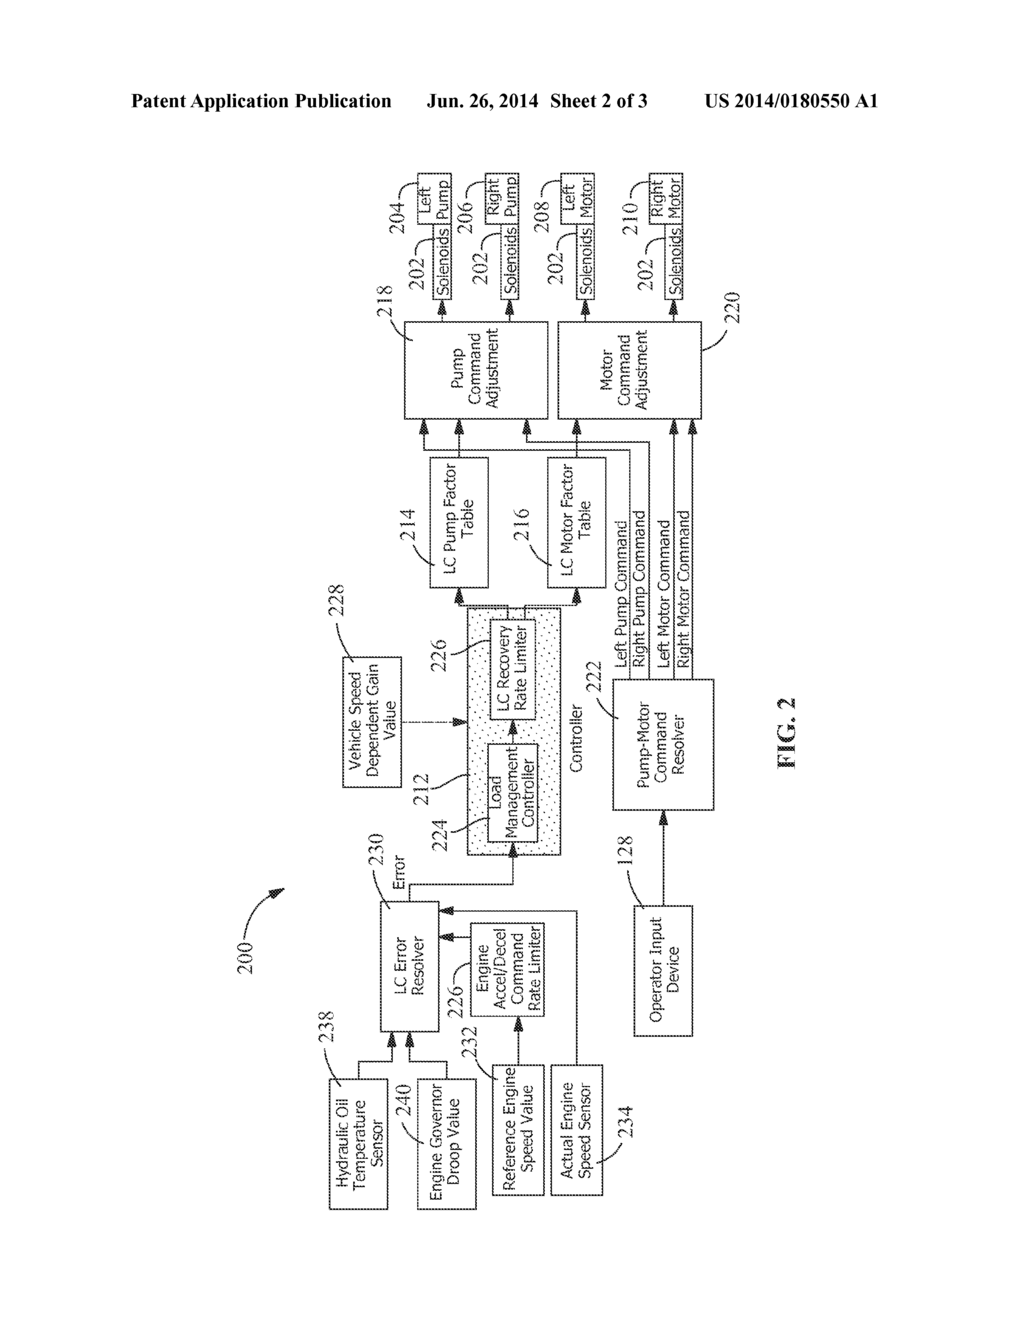 Dual Path Diagram Web About Wiring Piping Visio Load Control For A Machine With Electronically Rh Patentsencyclopedia Com Critical